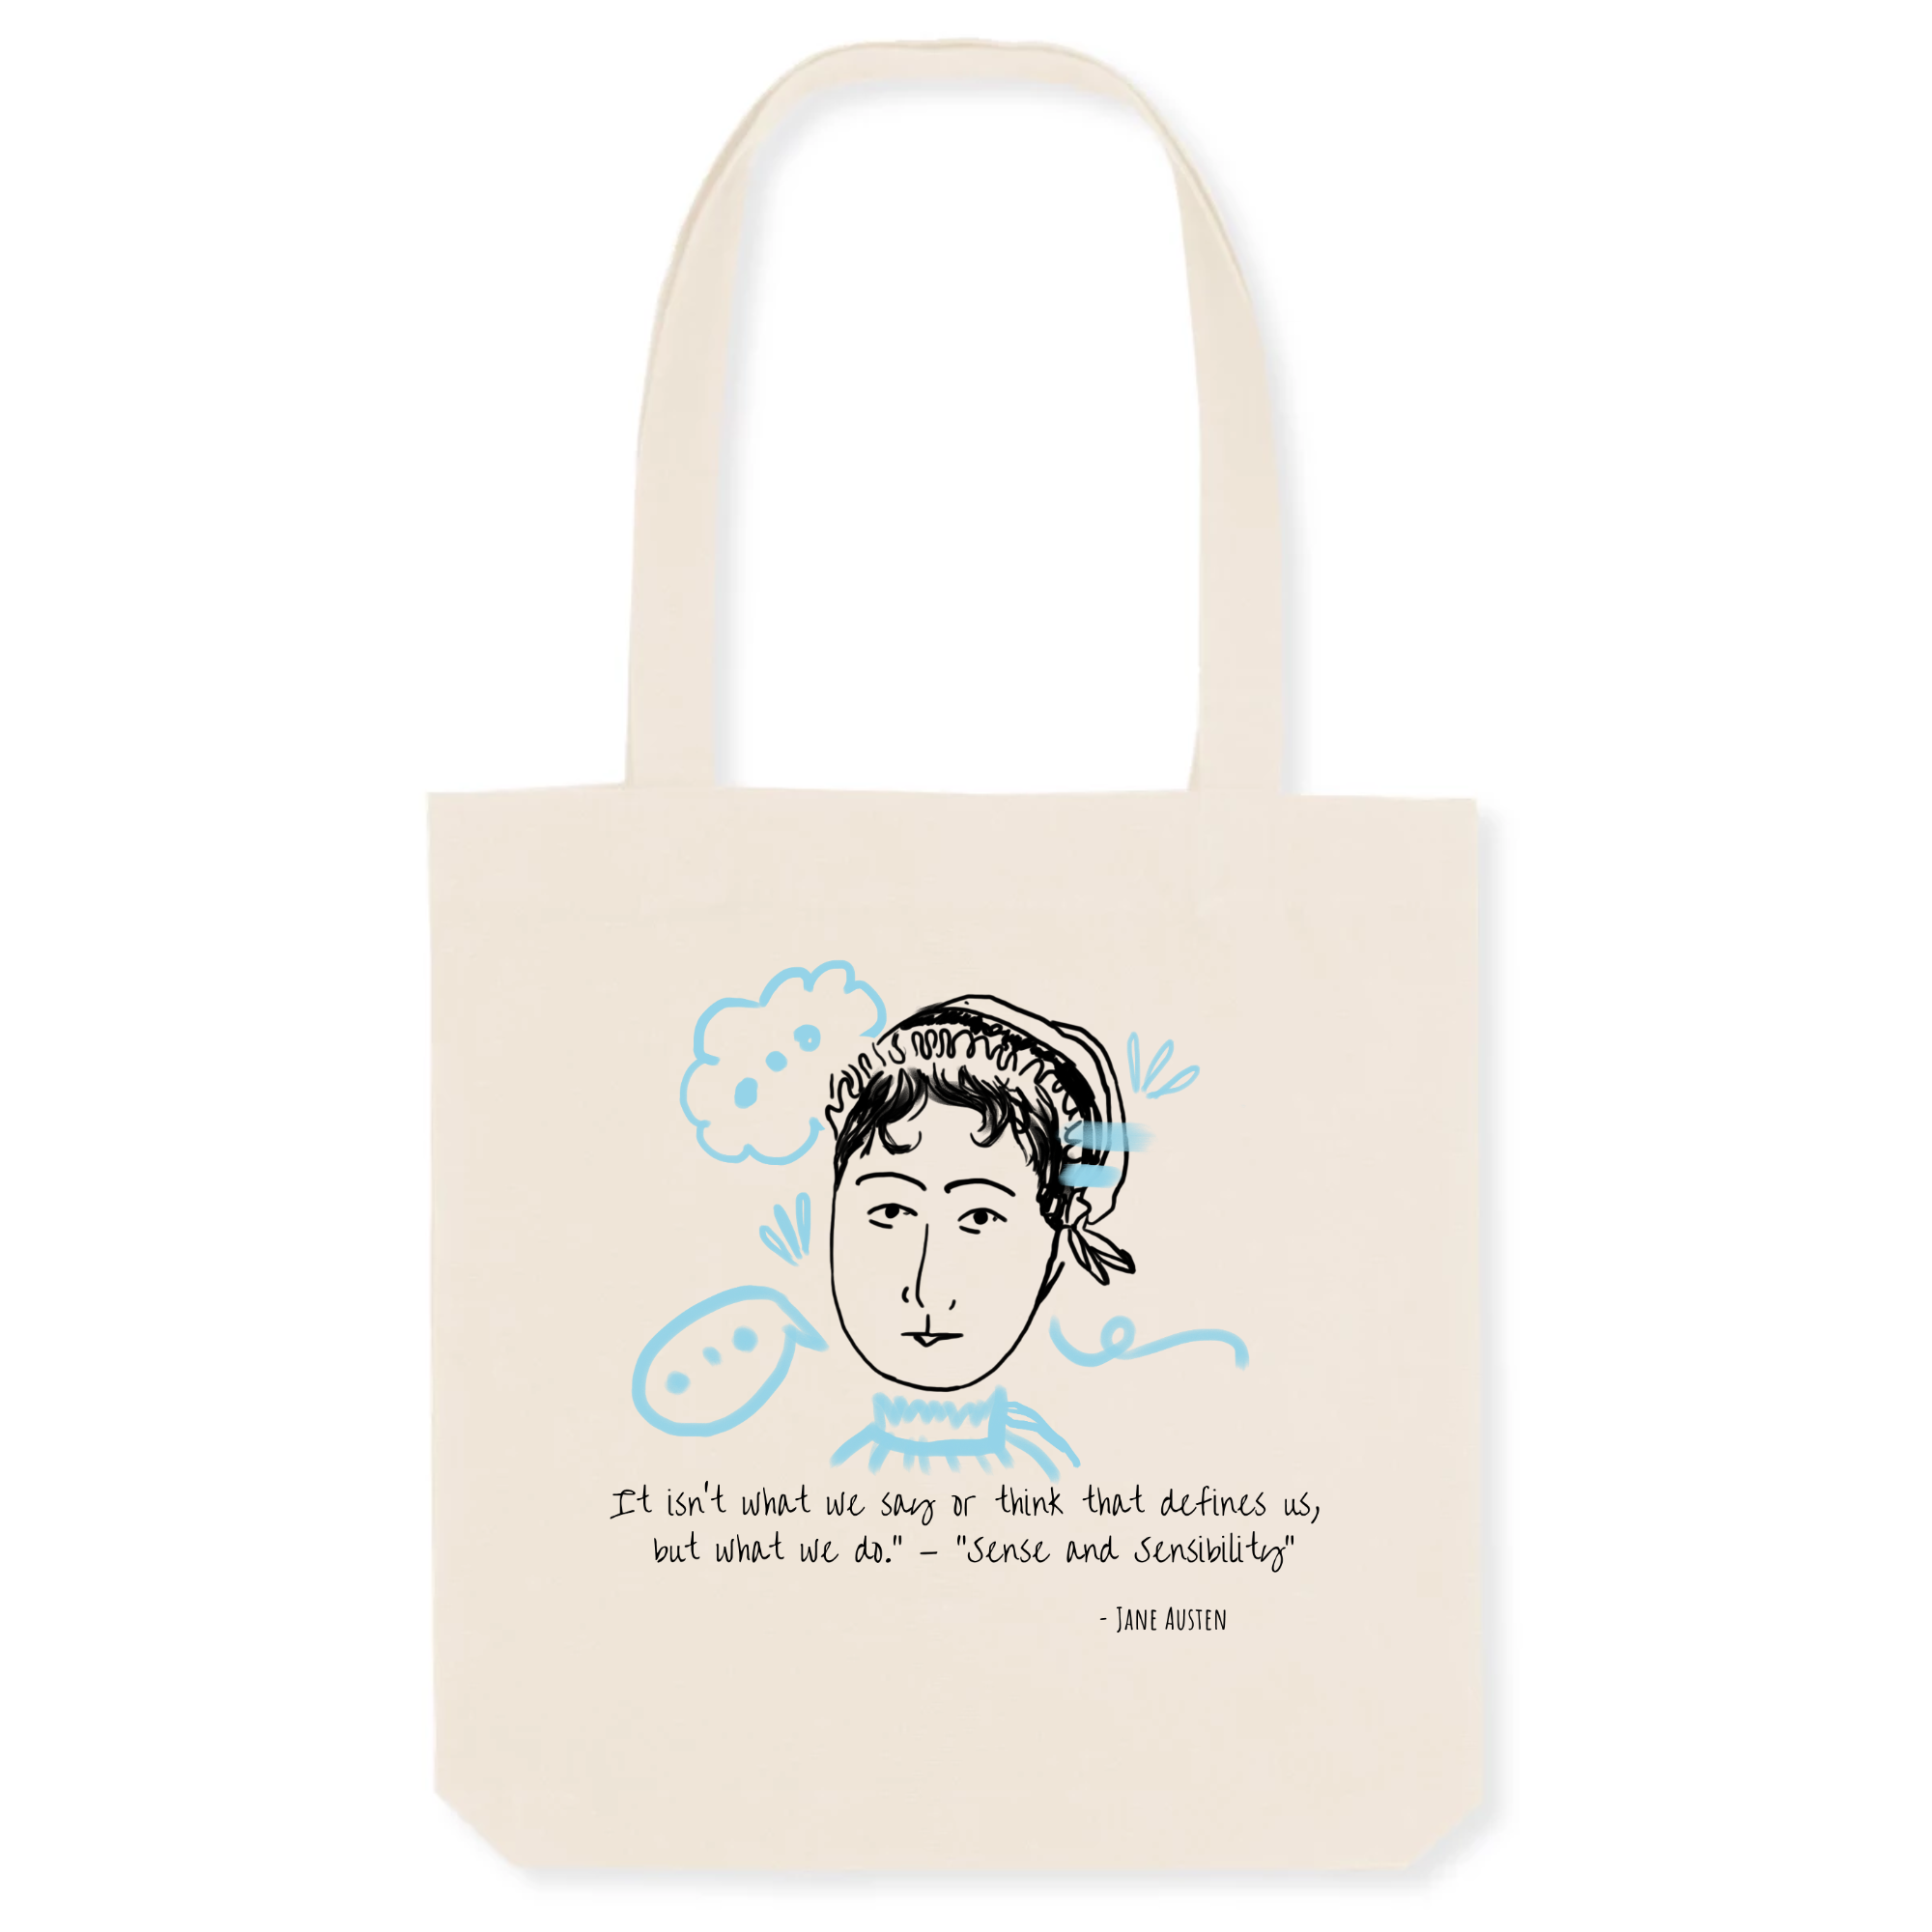 100% organic material tote bag with stylish Jane Austen illustration and quote great gift for women book lovers